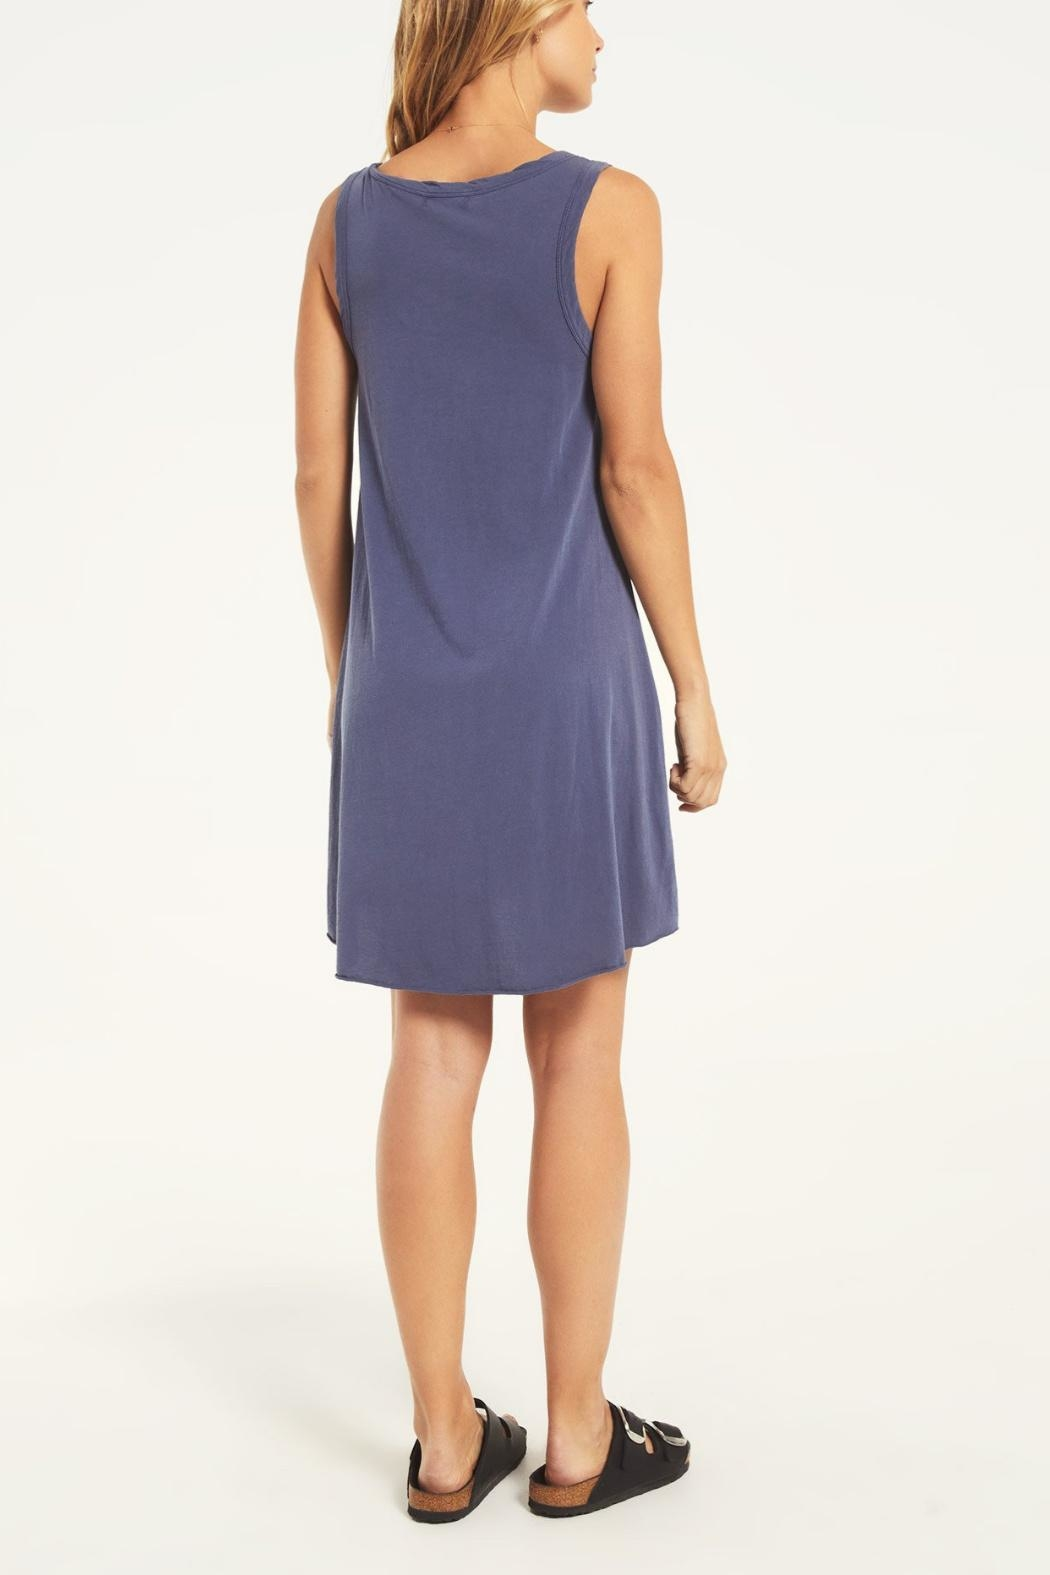 z supply Jersey Dress Blue - Front Full Image